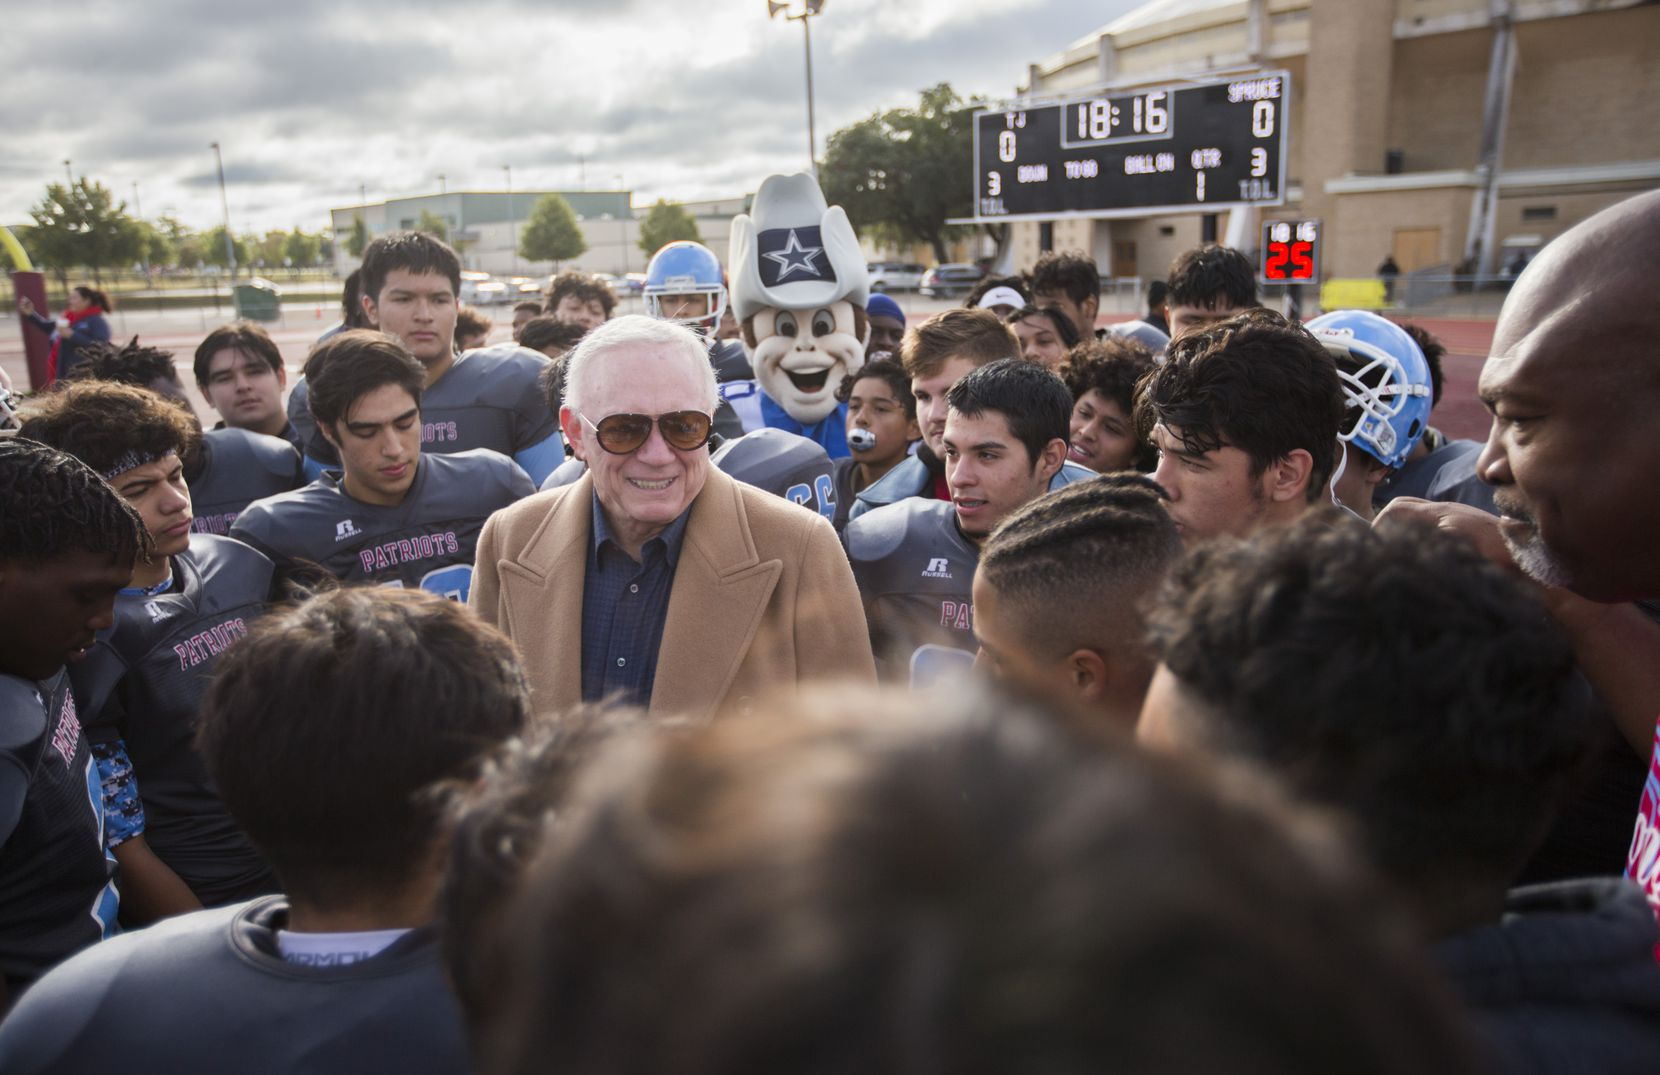 Dallas Cowboys Owner Jerry Jones talked with players before Thomas Jefferson High School took on Sprite High School on Saturday, October 26, 2019 at Loos Stadium in Dallas. Jones presented a check for $1 million to DISD before the game. Jefferson High School is one of the DISD schools hit the hardest in last weekend's tornado. (Ashley Landis/The Dallas Morning News)